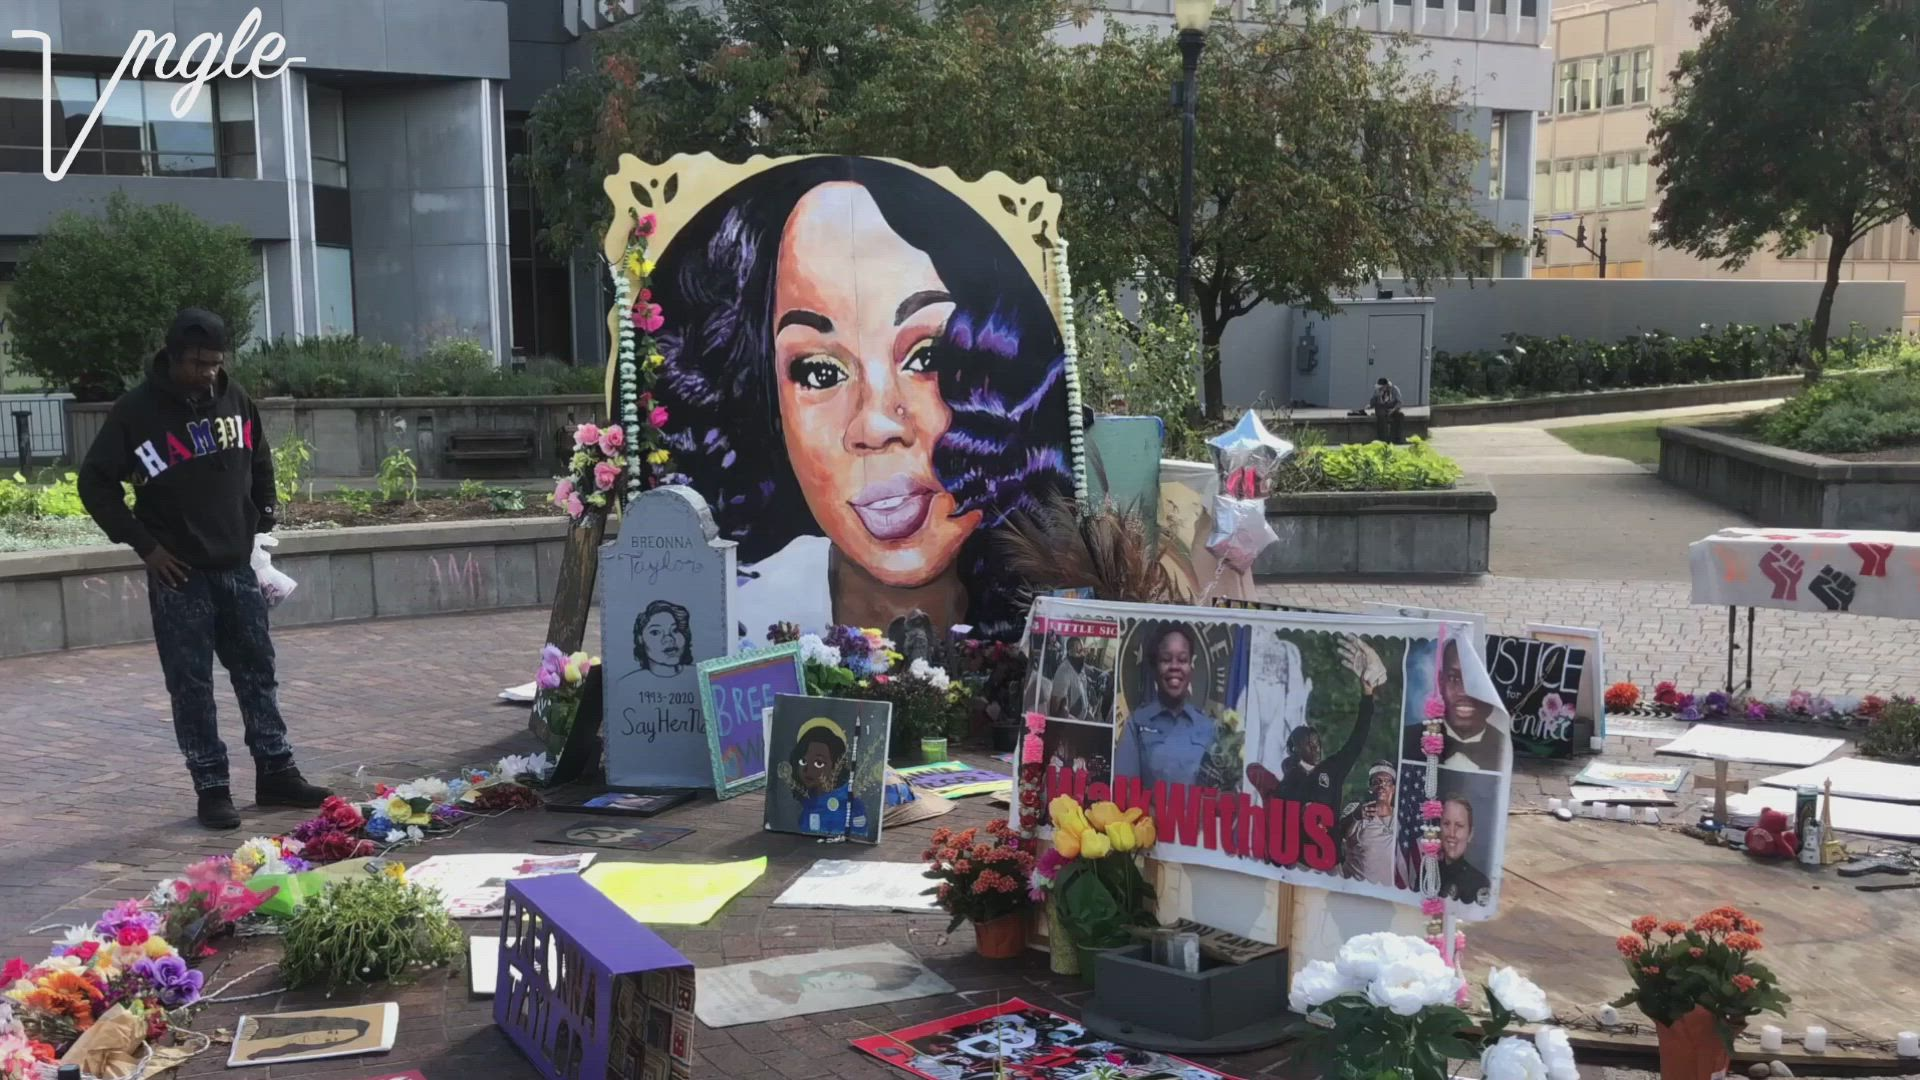 This is Breonna Taylor's Memorial.